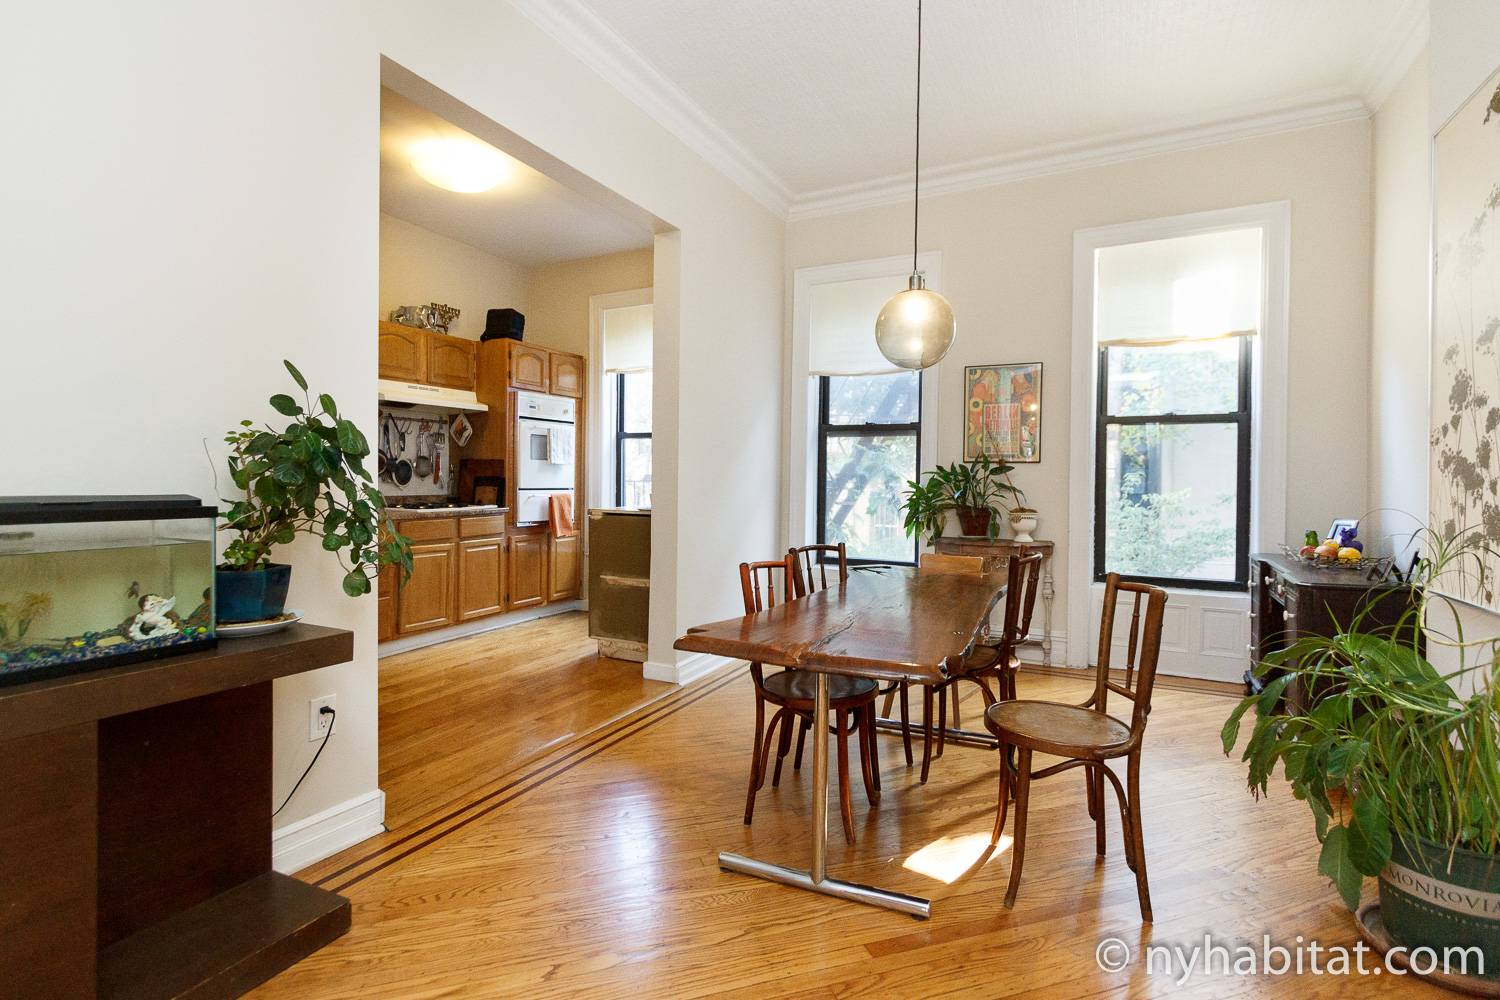 Image of the dining space of vacation rental NY-14852 in Crown Heights decorated with plants on the side.